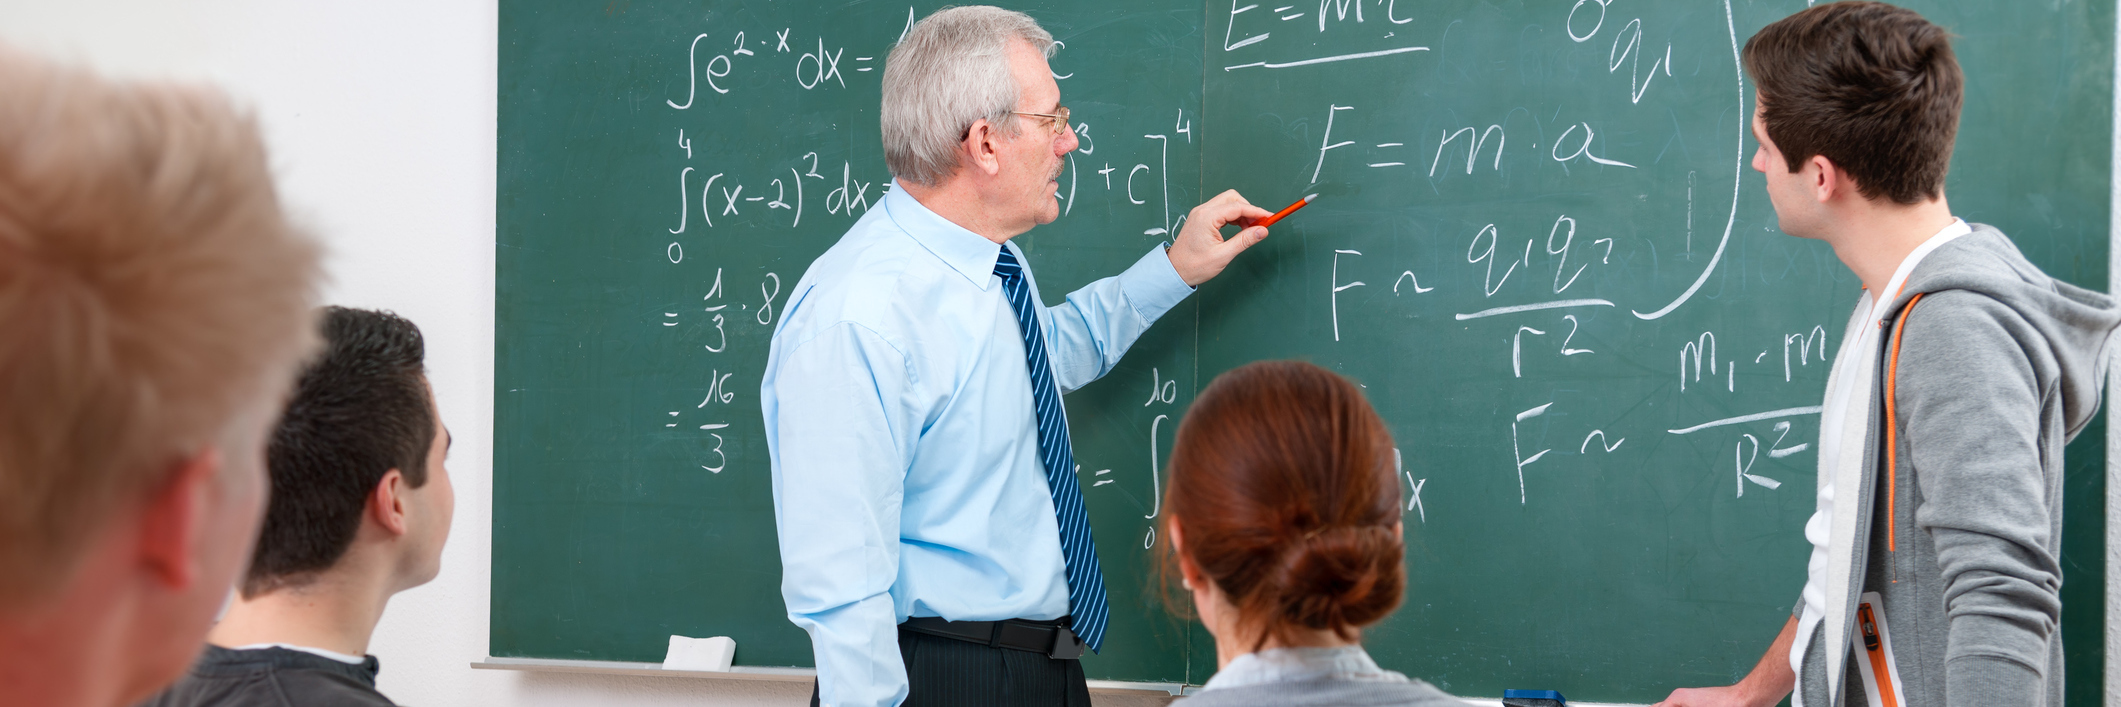 professor writing on chalkboard and teaching students